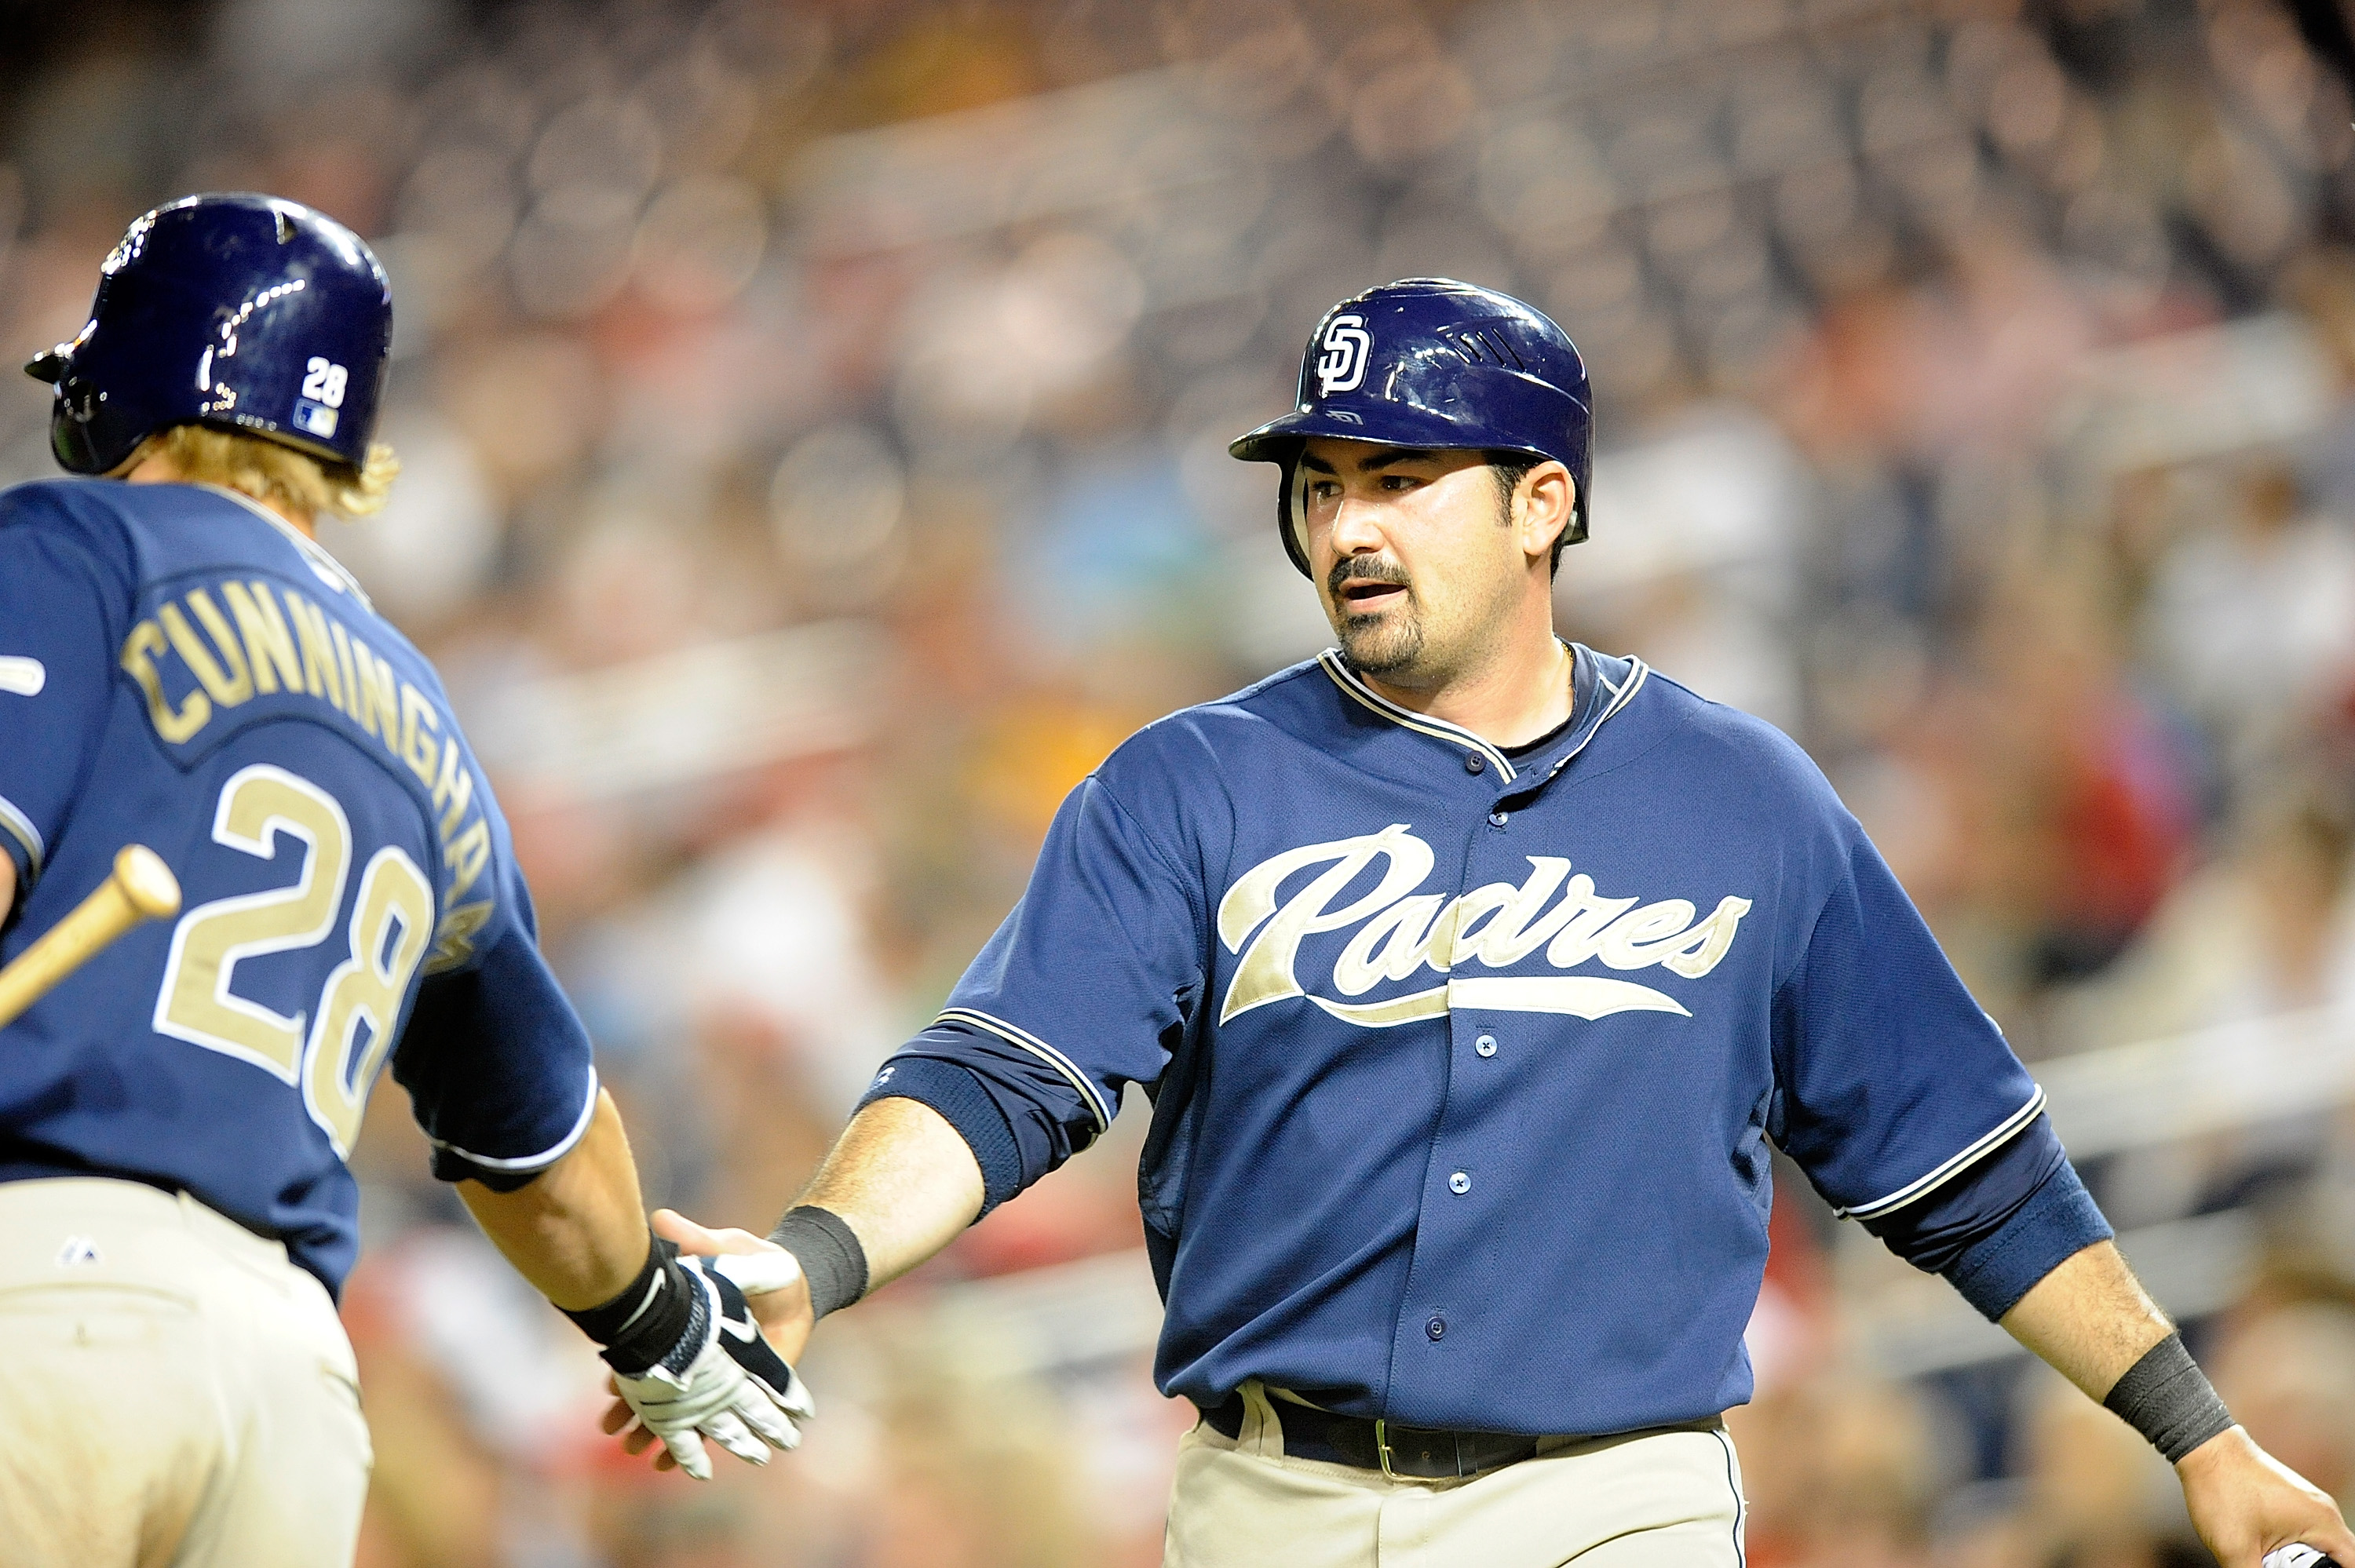 WASHINGTON - JULY 06:  Adrian Gonzalez #23 of the San Diego Padres is congratulated by Aaron Cunningham #28 after scoring in the eighth inning against the Washington Nationals at Nationals Park on July 6, 2010 in Washington, DC.  (Photo by Greg Fiume/Gett